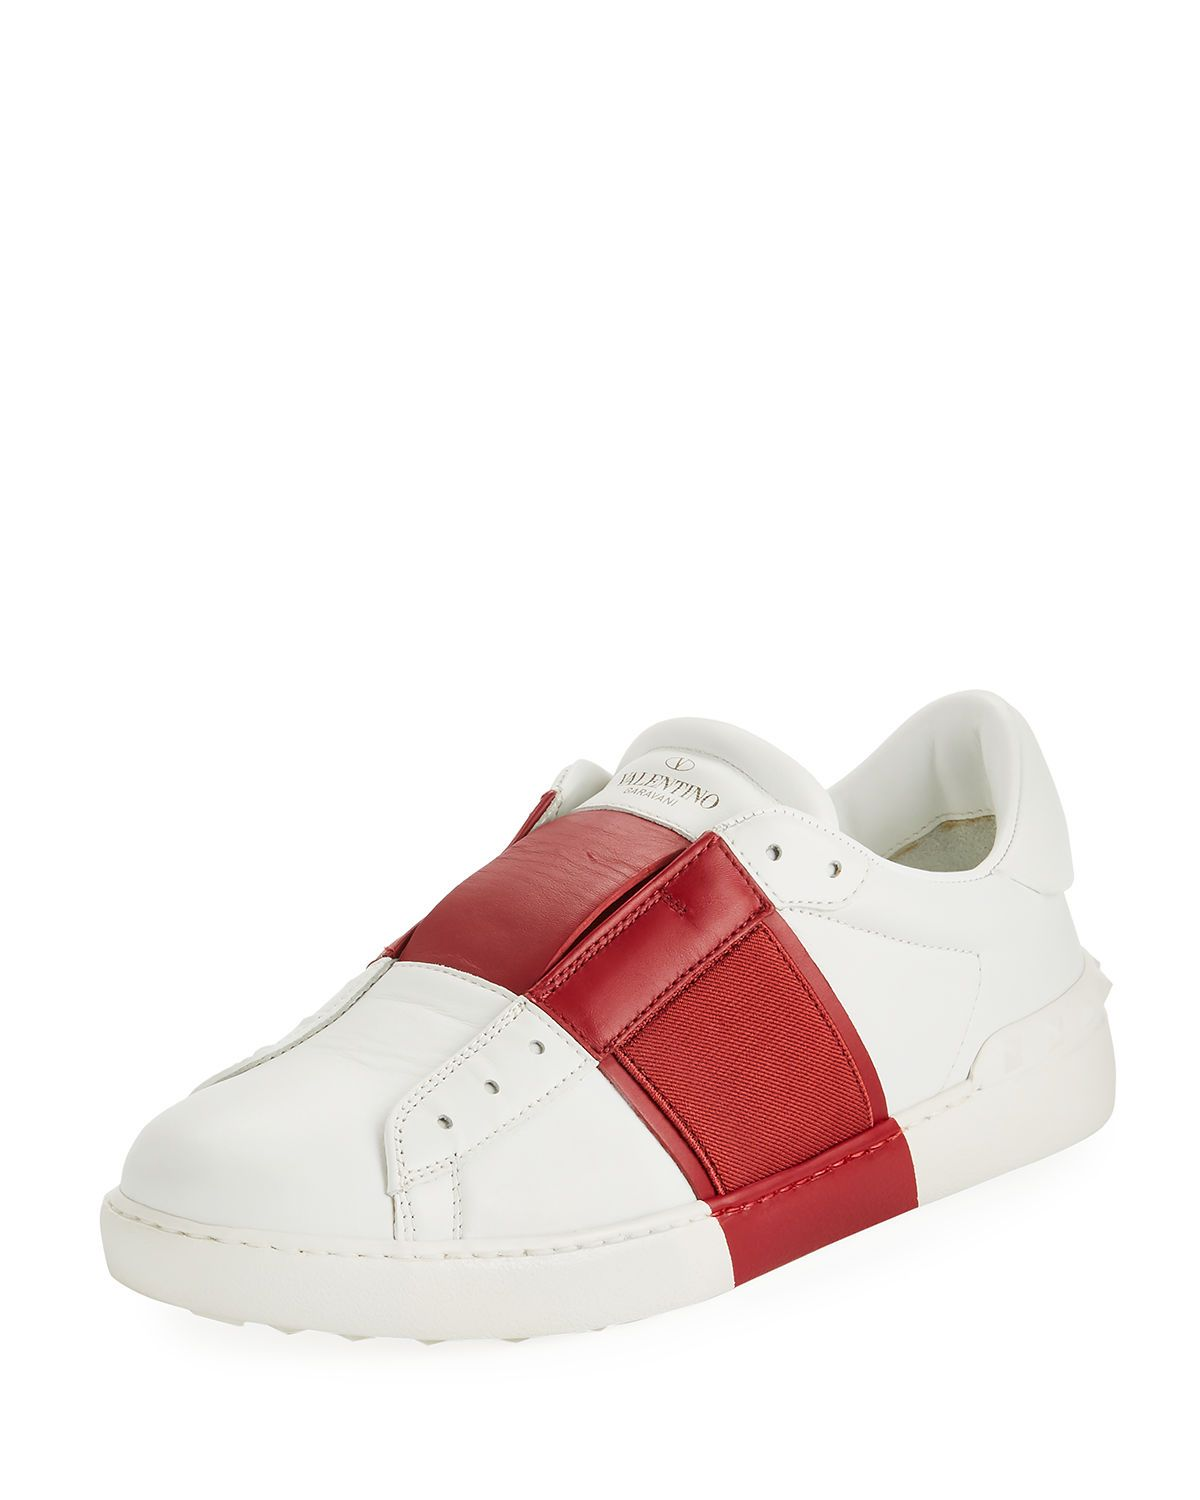 0372a1d9eebfe VALENTINO MEN'S WIDE-STRIPE LOW-TOP SNEAKERS. #valentino #shoes ...